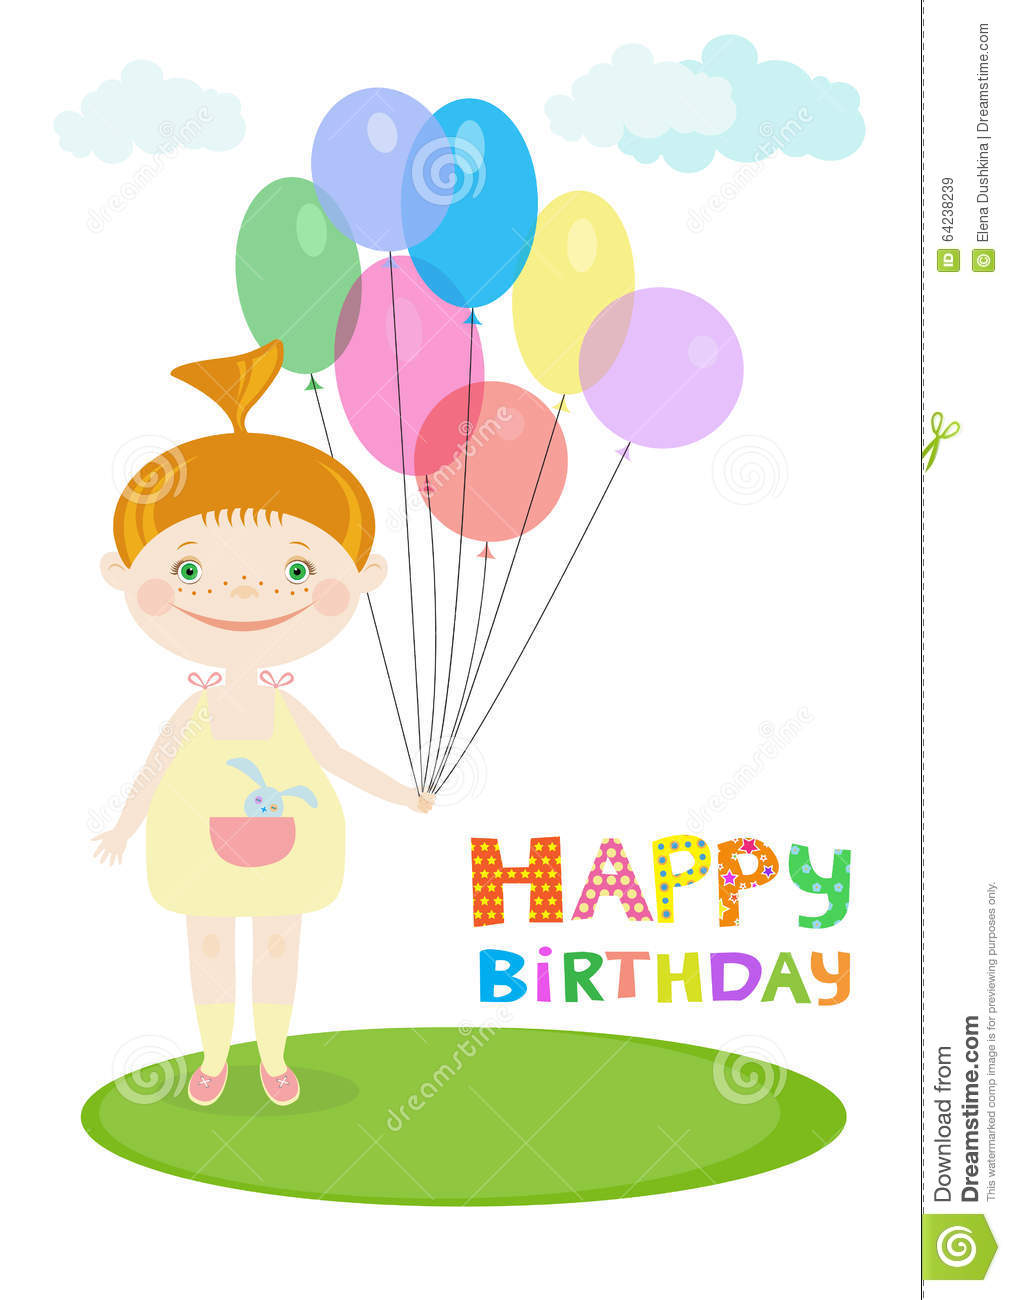 Happy Birthday Illustration With A Little Girl Holding Balloons